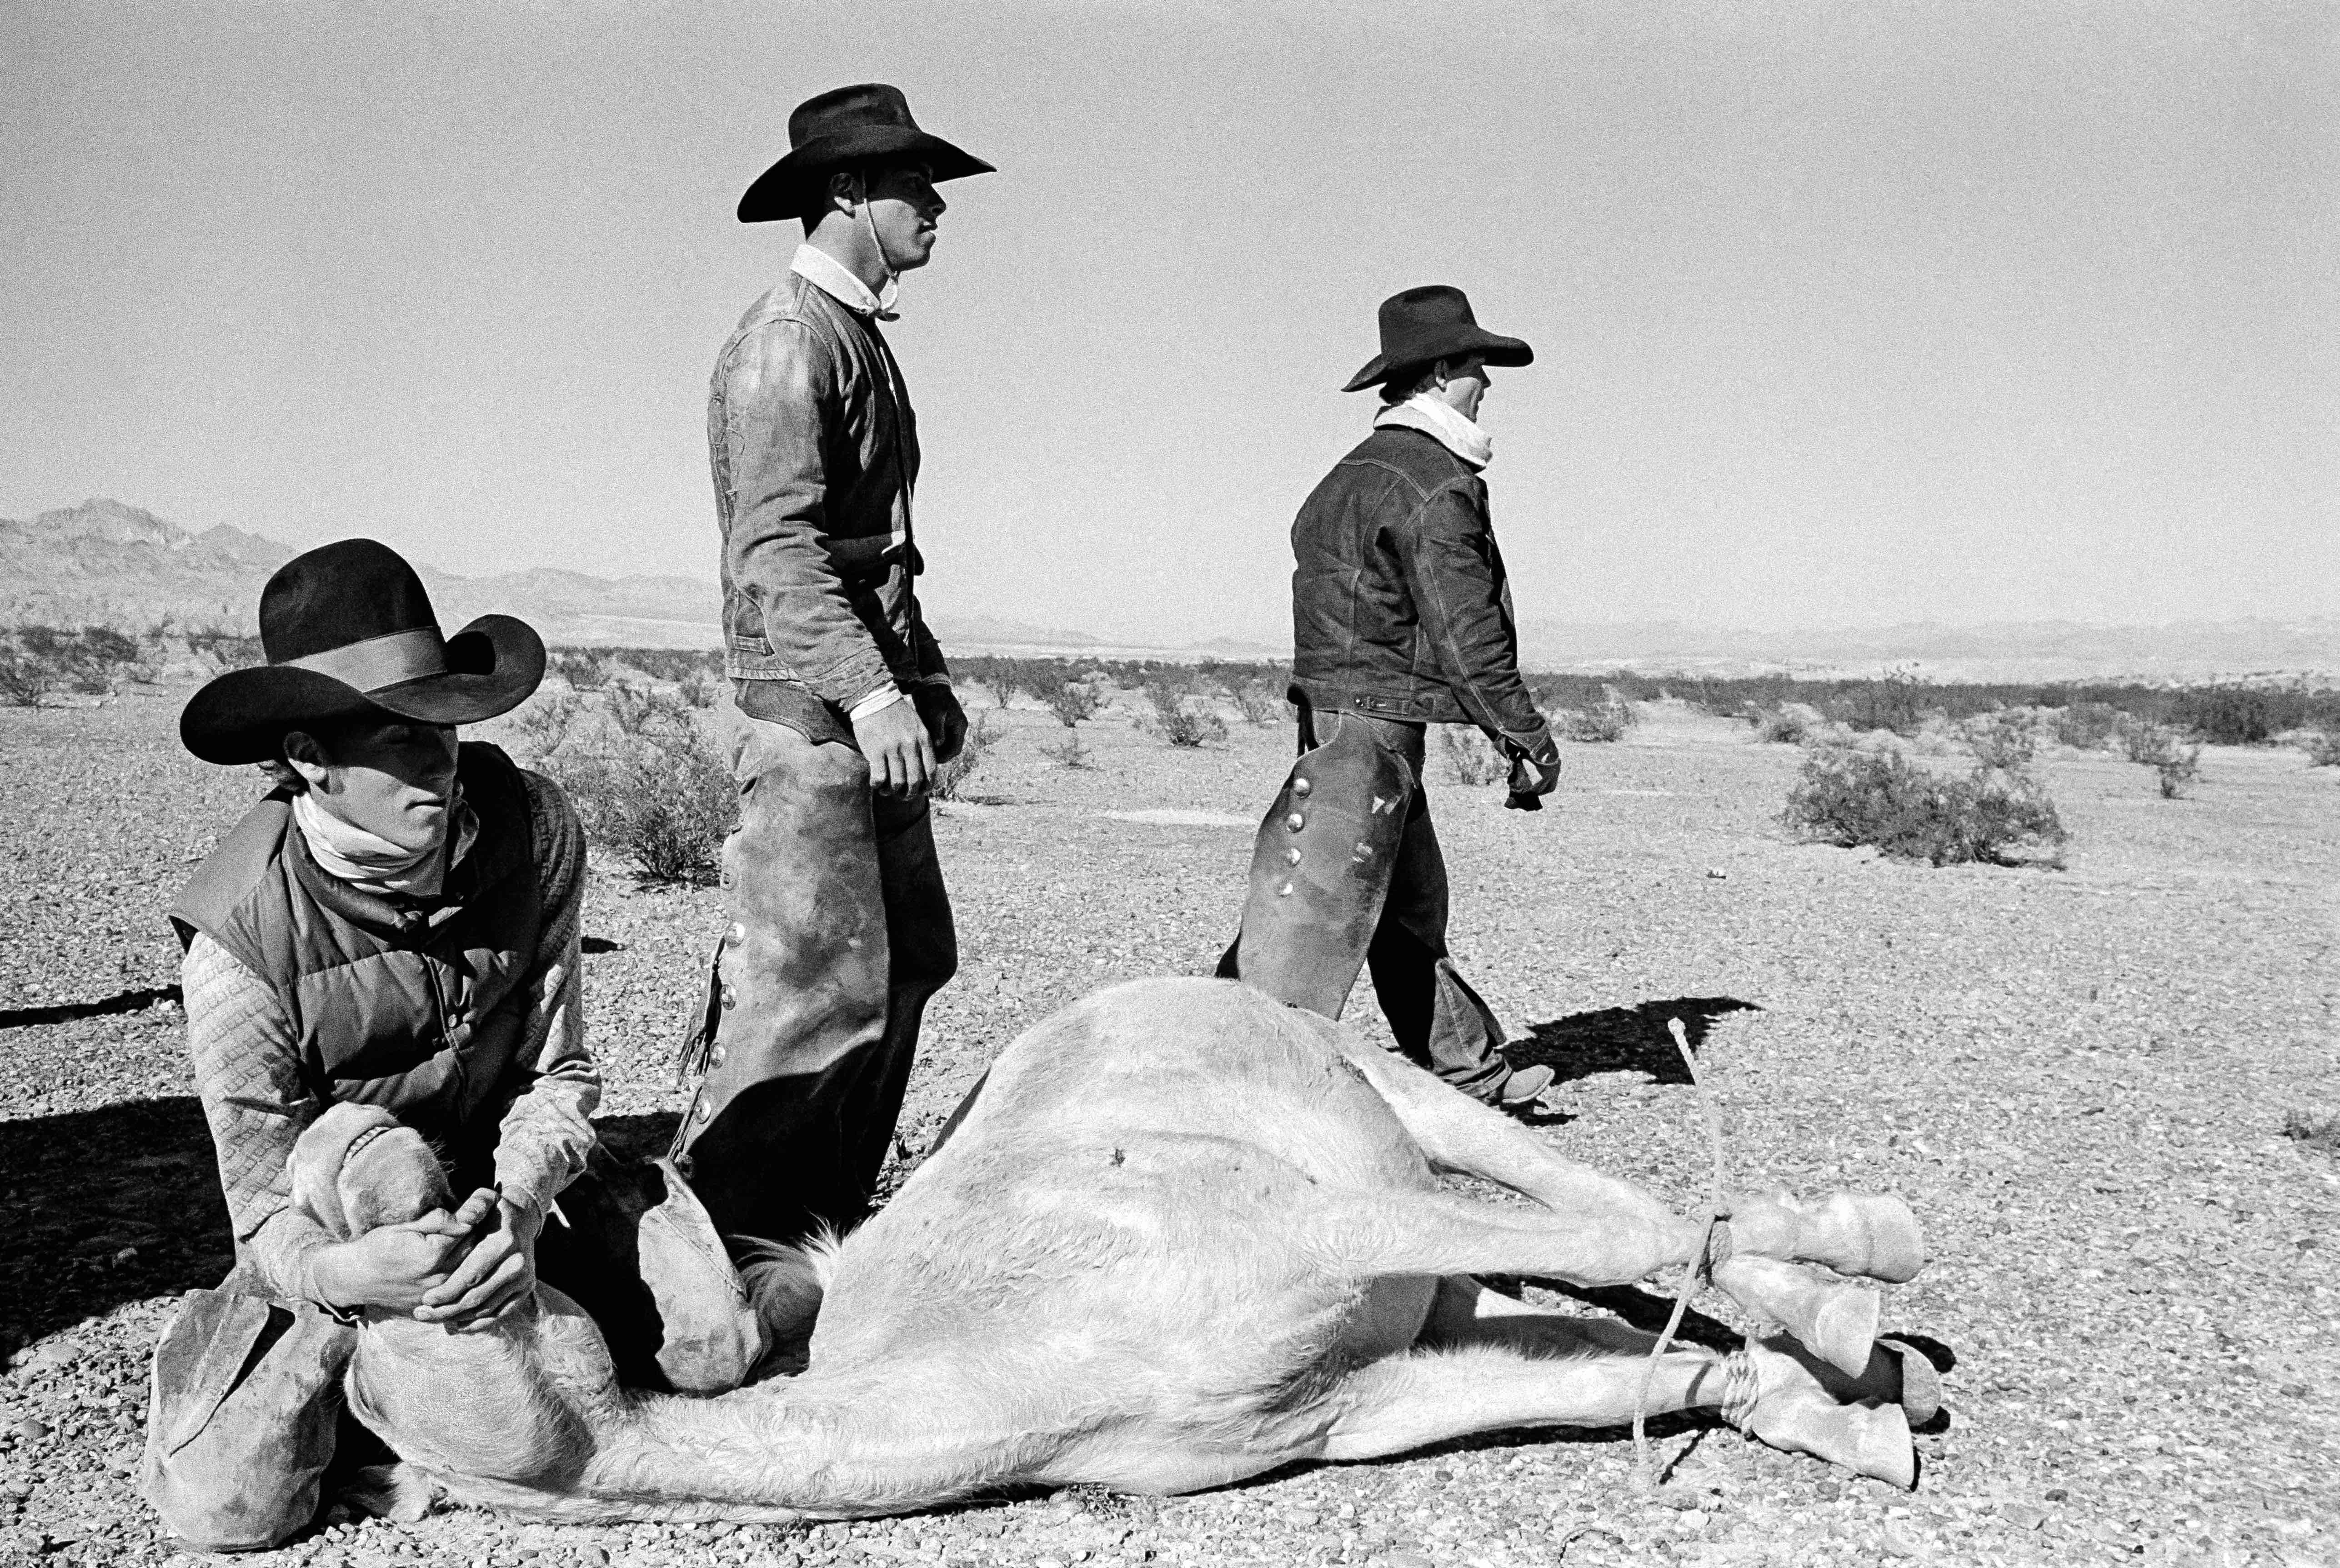 The round-up of the last wild horses in the desert of Arizona. 1980.